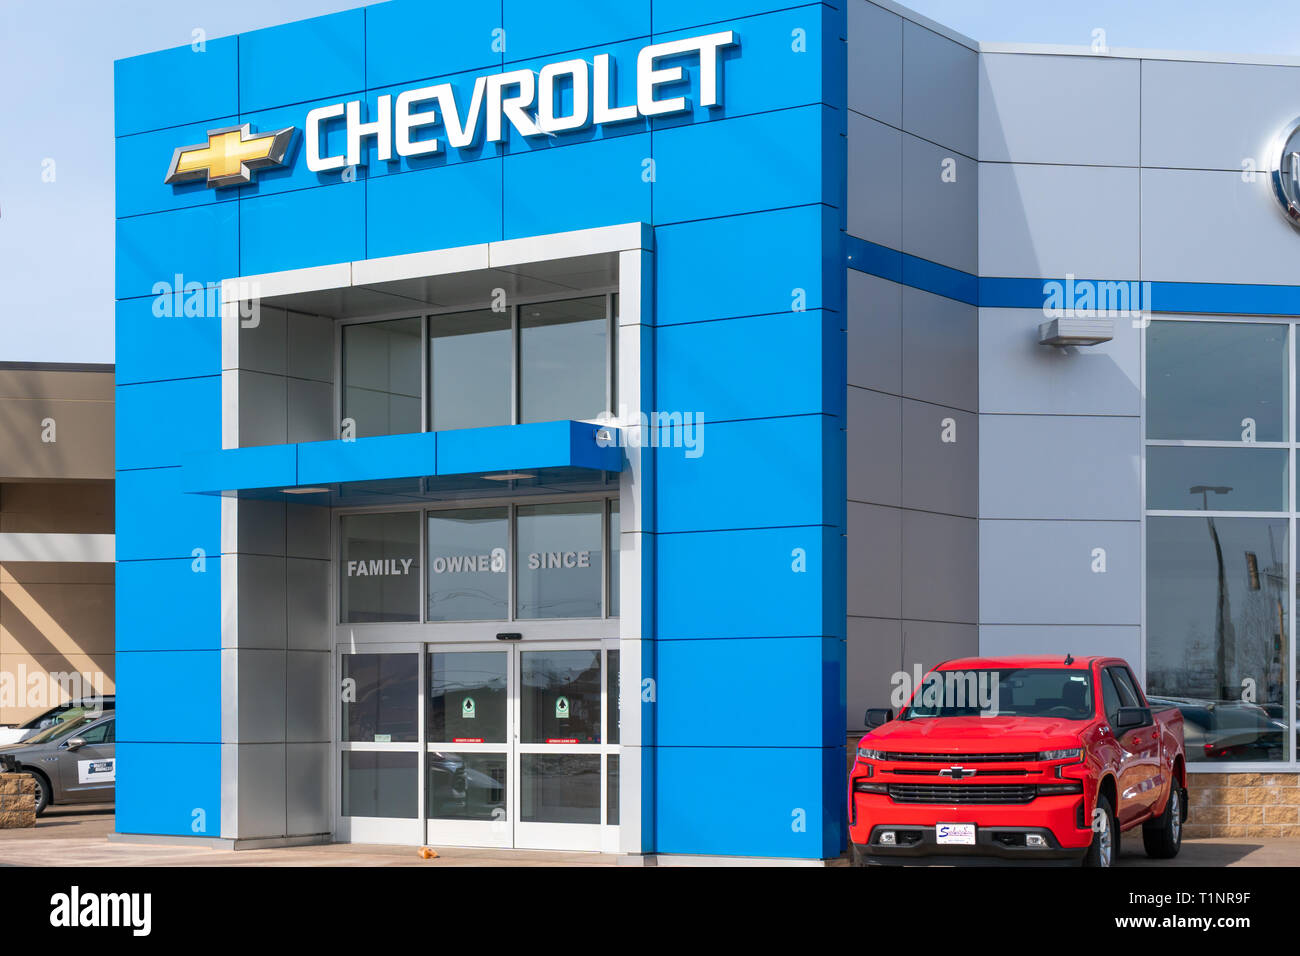 STILLWATER, MN/USA - MARCH 24, 2019: Chevrolet automobile dealership and trademark logo. - Stock Image